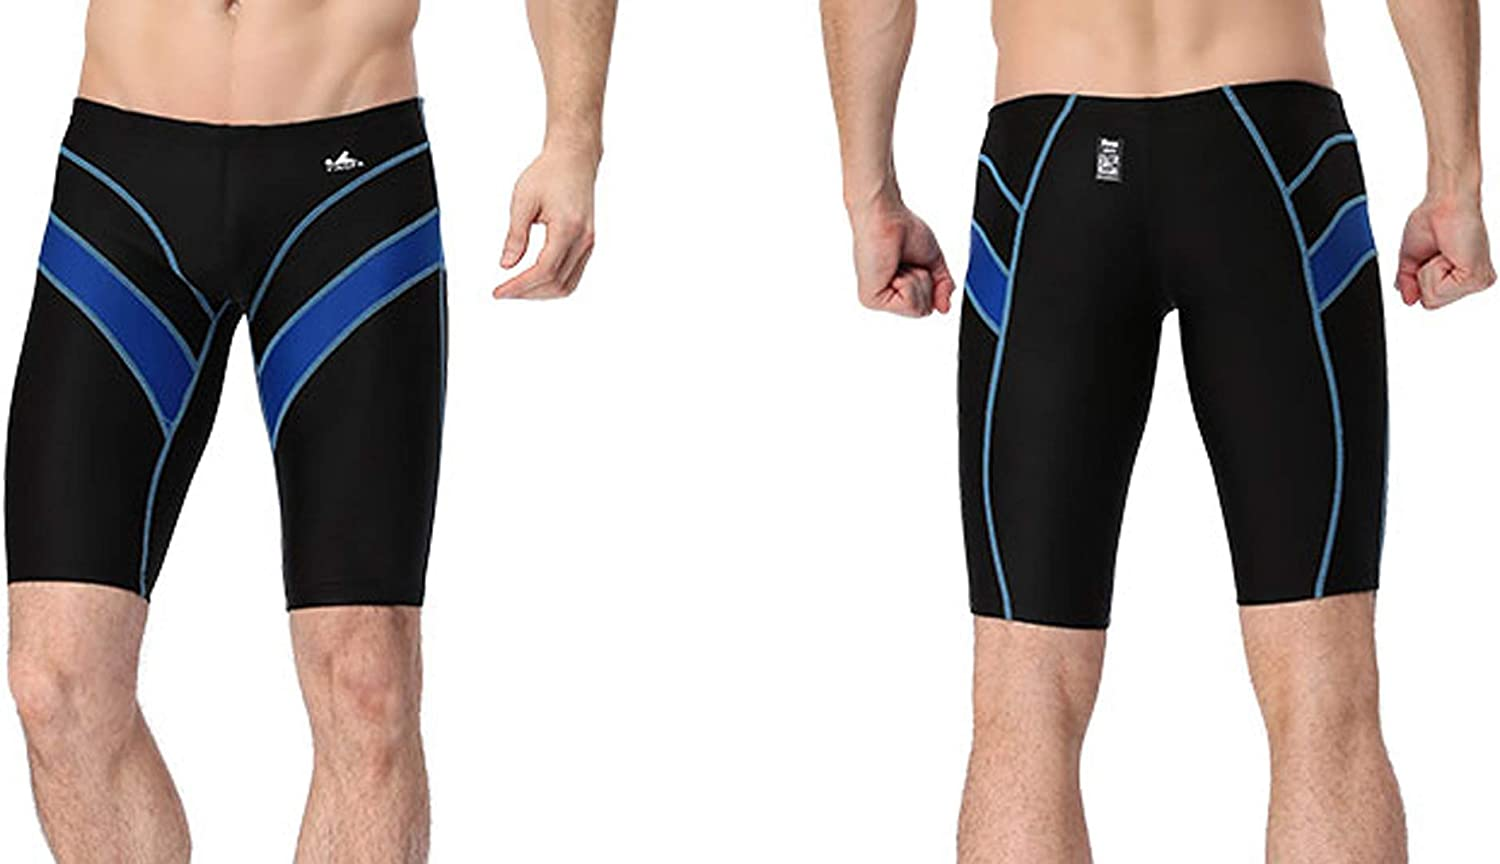 Yingfa racing /& training swim jammers for boys /& men FINA APPROVED Blue or Black